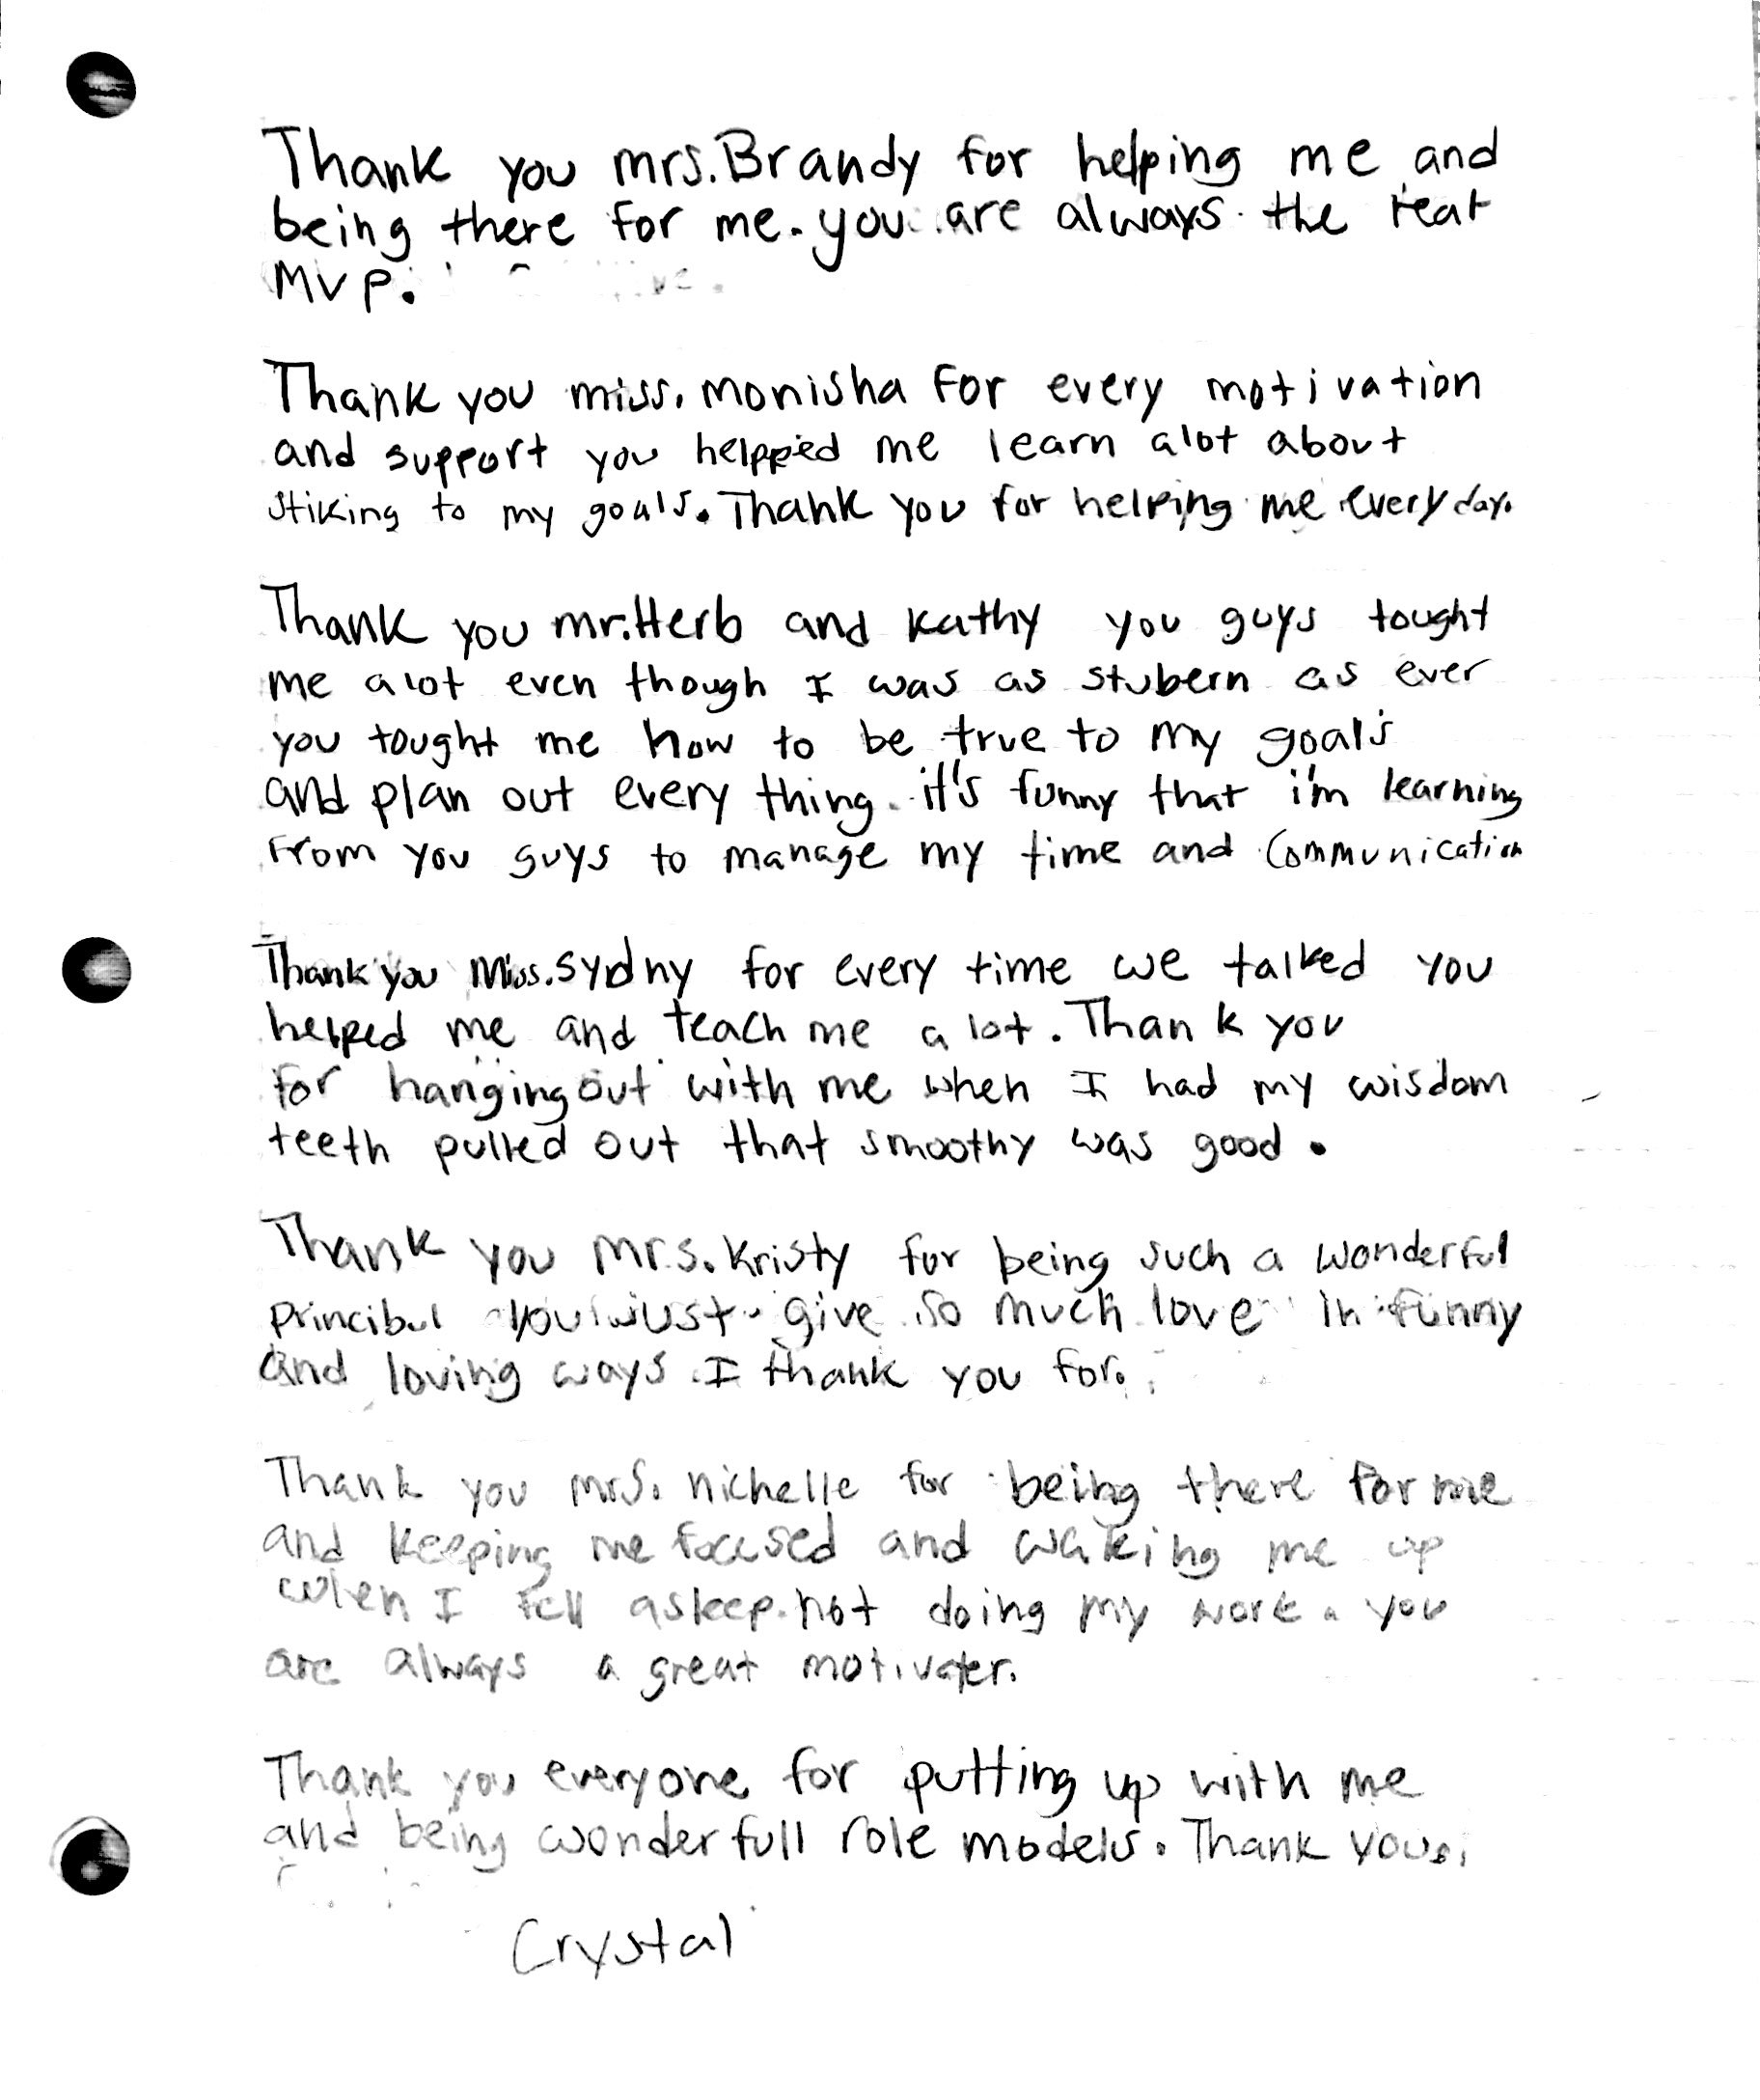 Crystal Thank You Letter.jpg